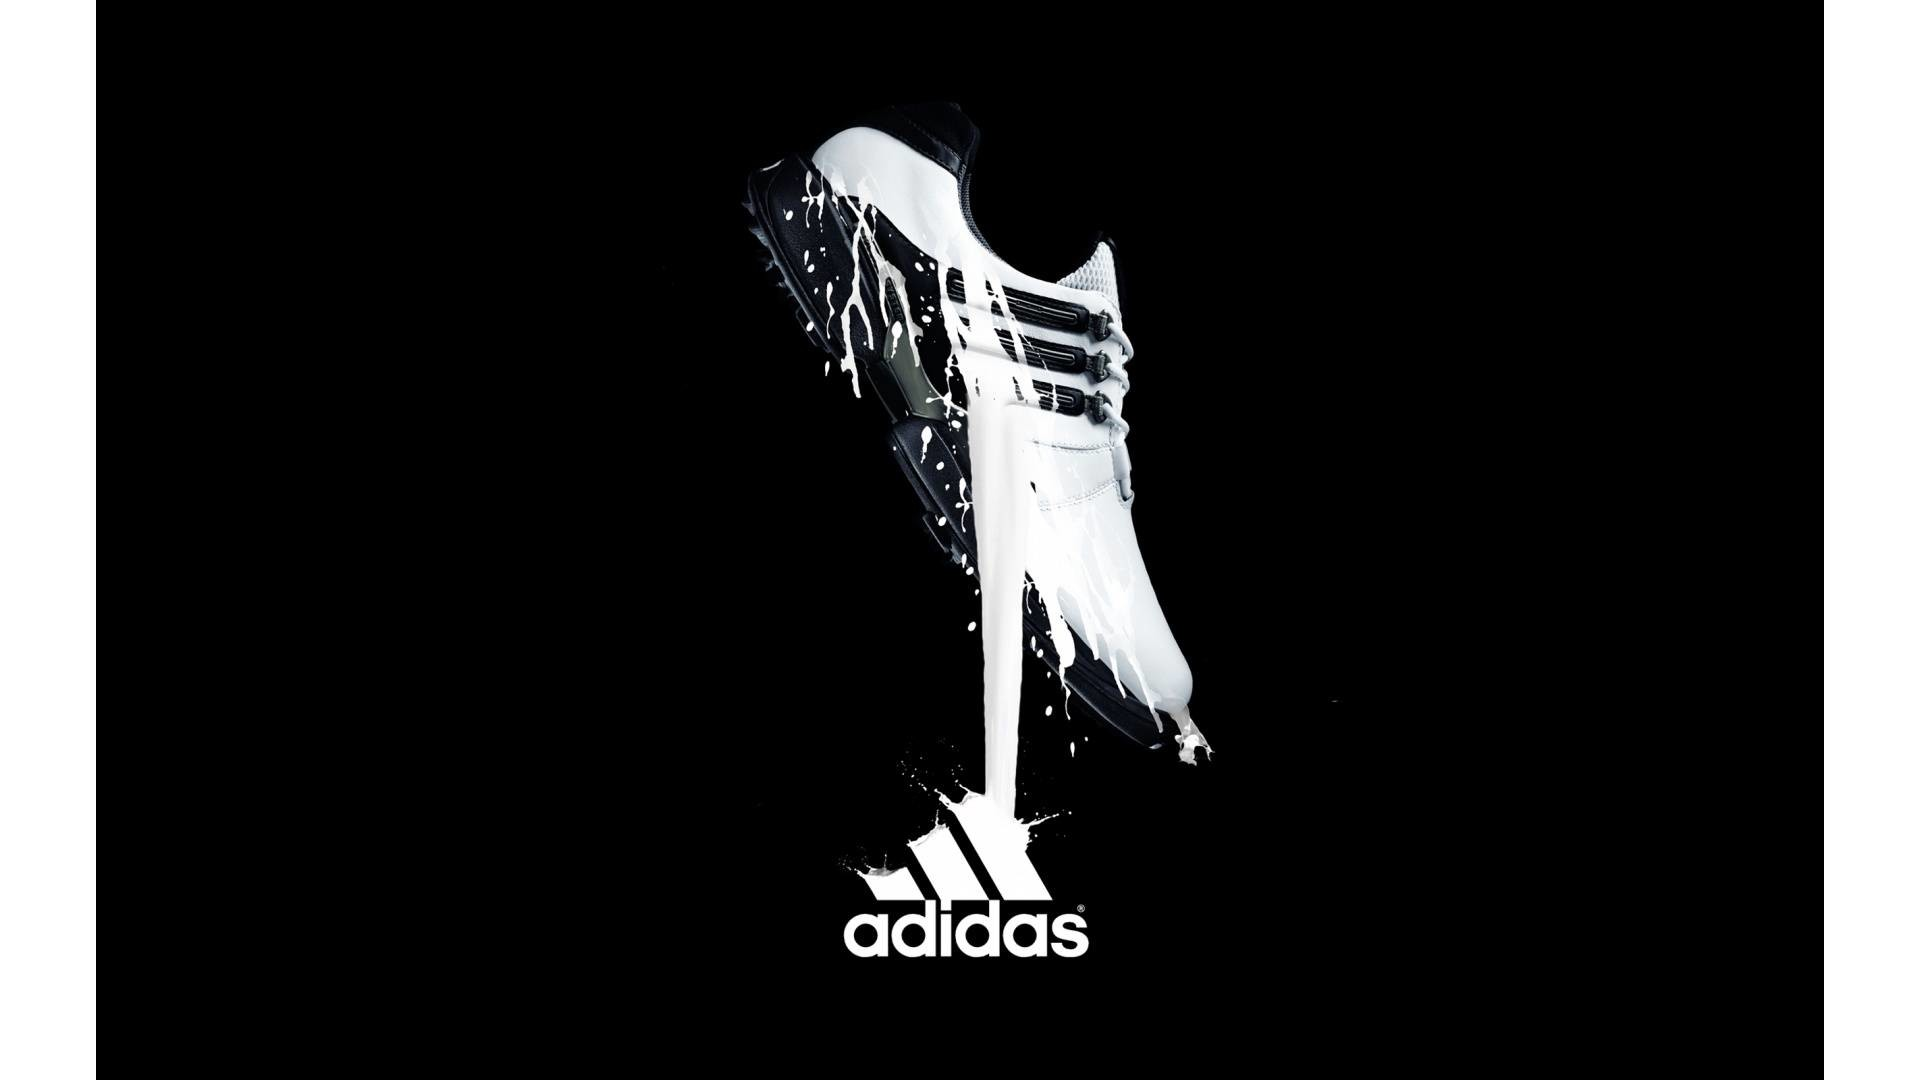 1920x1080 New HD Adidas Shoes With Logo Wallpaper